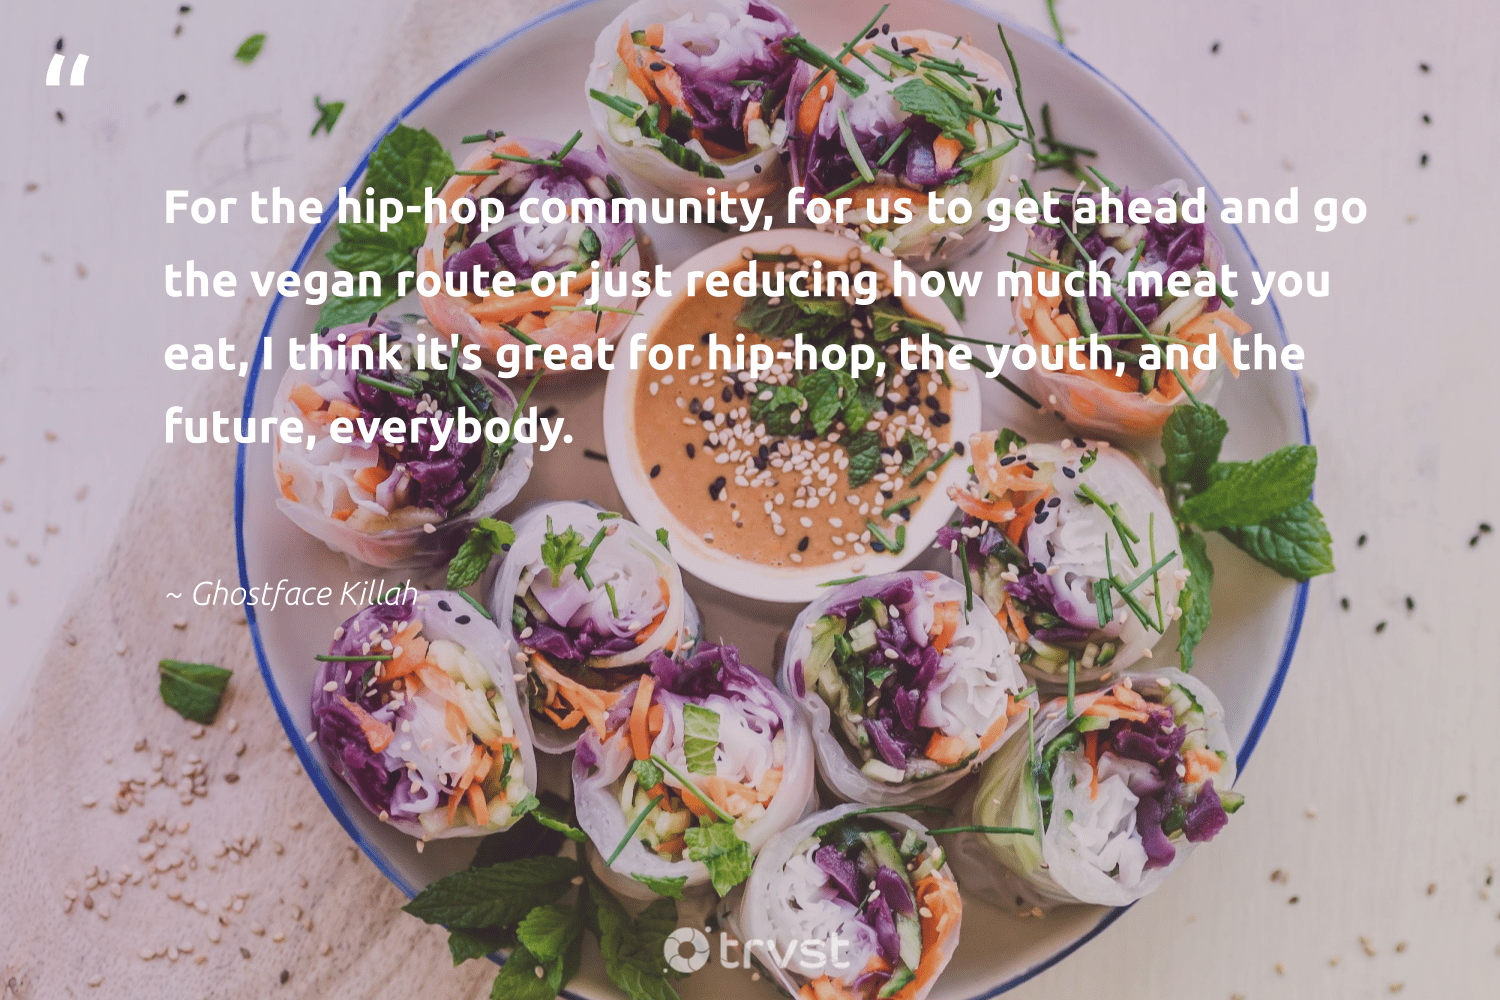 """For the hip-hop community, for us to get ahead and go the vegan route or just reducing how much meat you eat, I think it's great for hip-hop, the youth, and the future, everybody.""  - Ghostface Killah #trvst #quotes #vegan #govegan #sustainability #fashion #dotherightthing #veganlife #gogreen #bethechange #changetheworld #vegetarian"